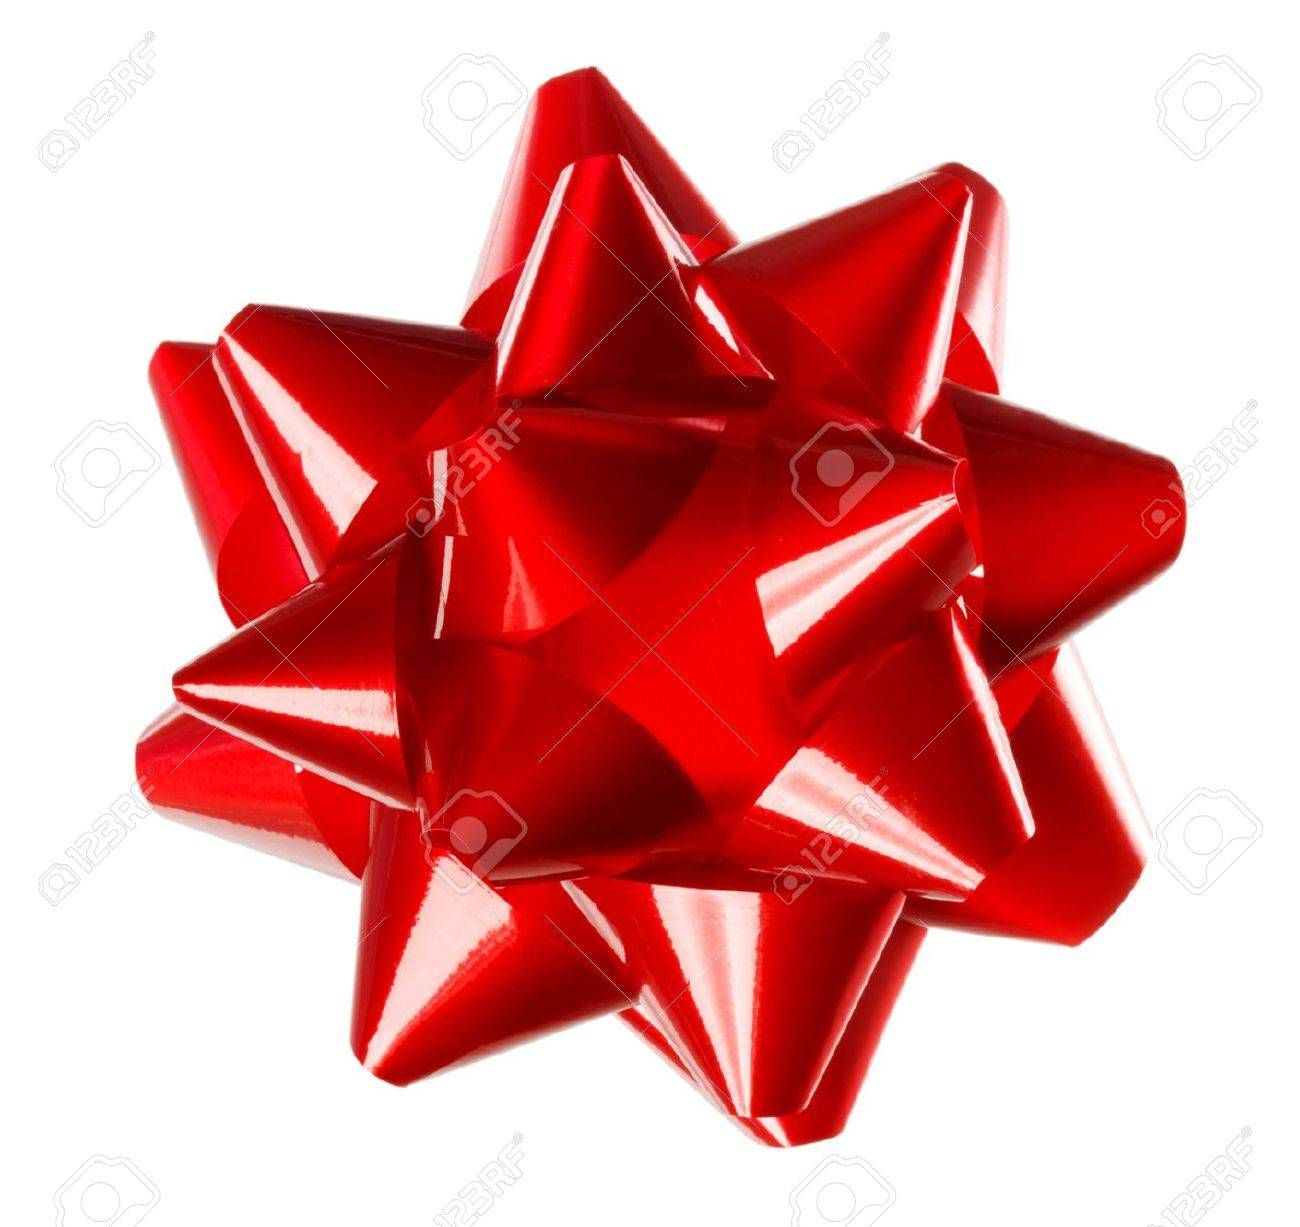 Red gift bows border with clipping path for easy background removing - Red Bow Red Holiday Gift Bow On White Background Stock Photo